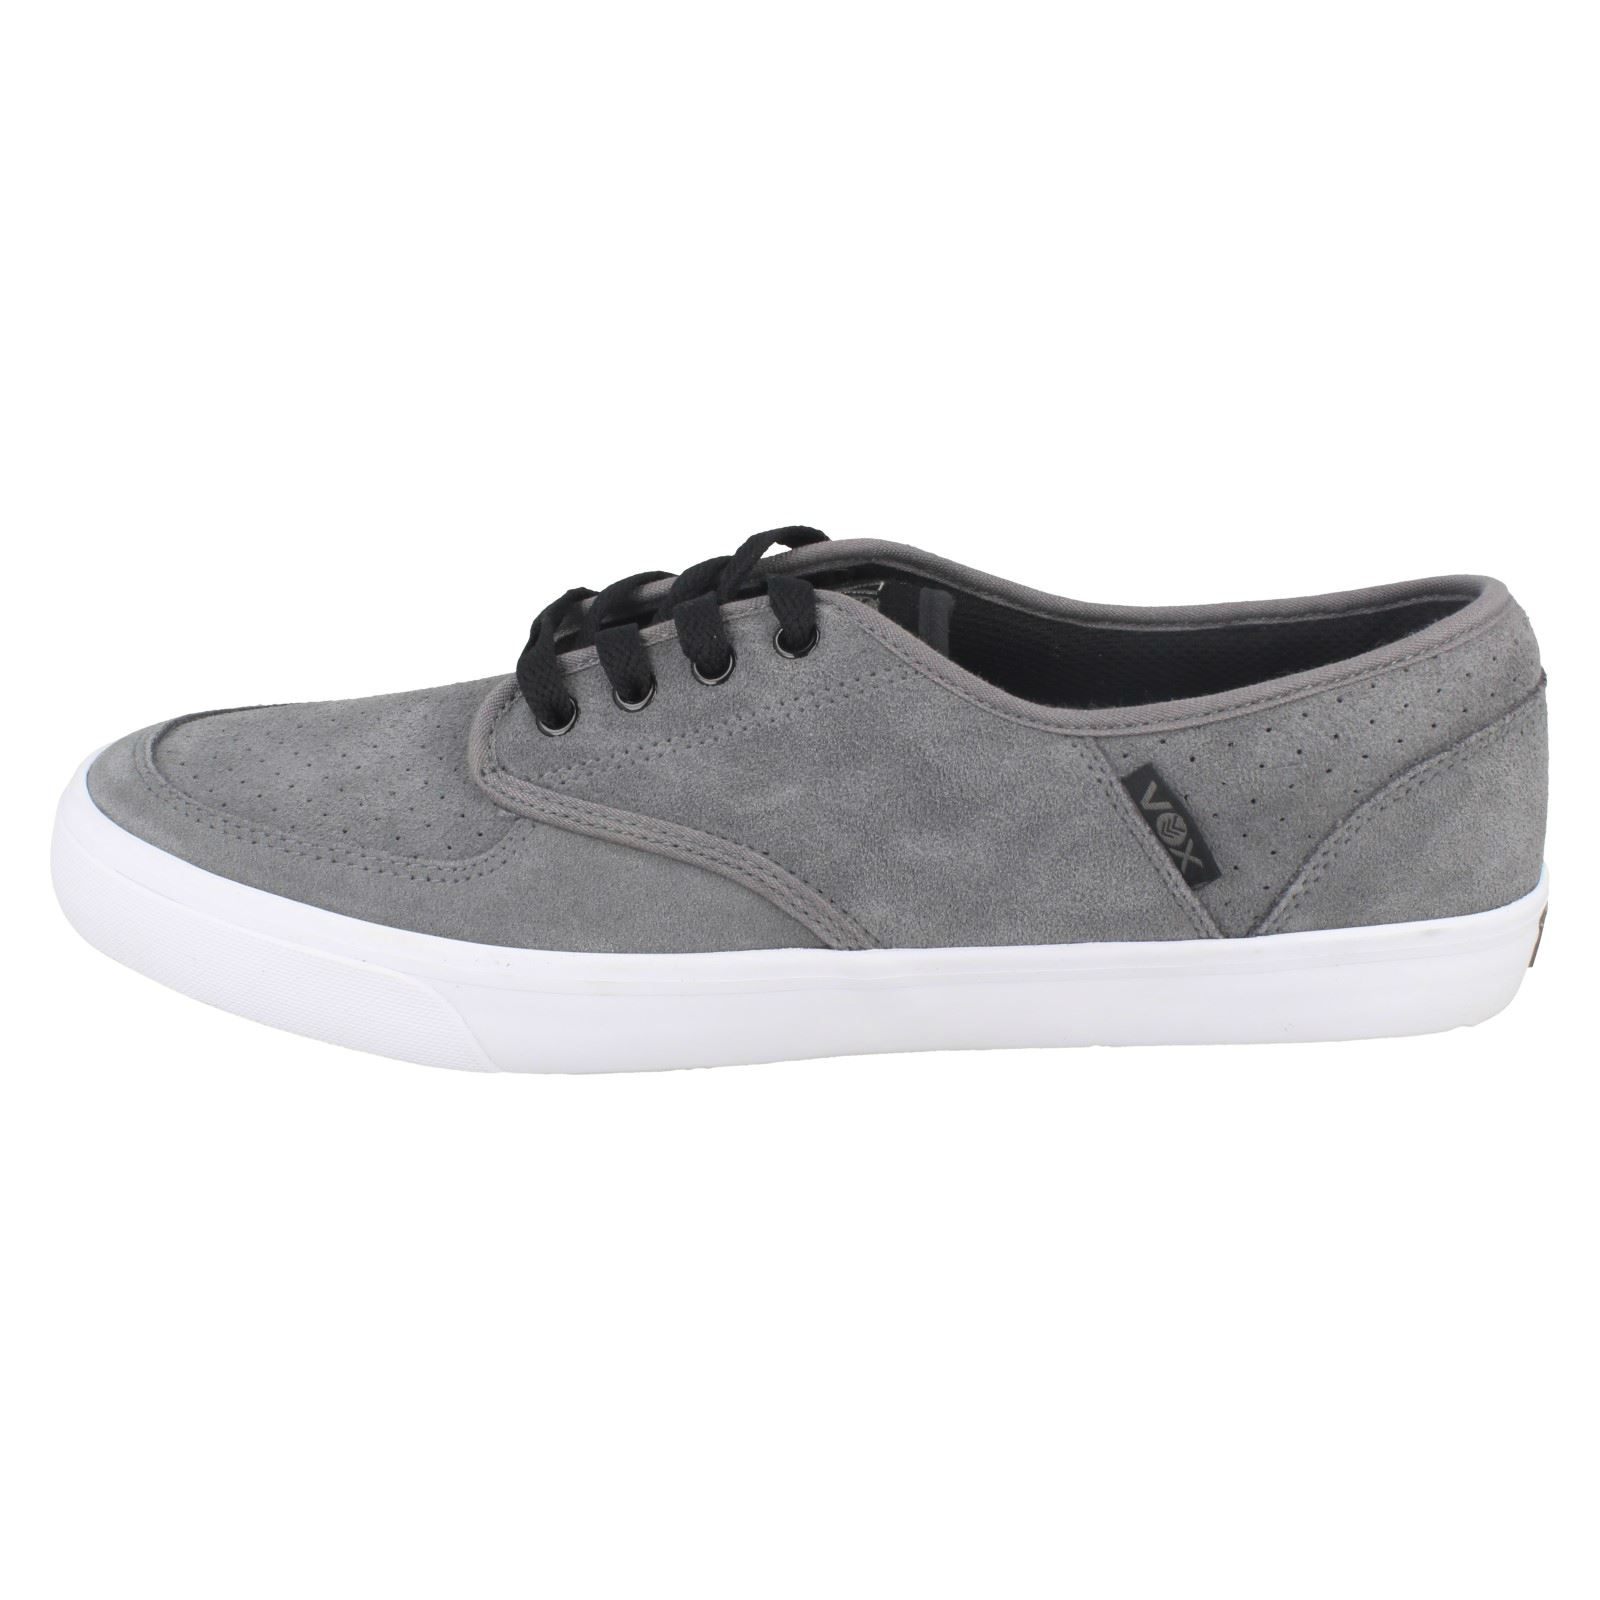 Mens Vox Footwear Inc Classx Casual Trainers Trainers Trainers 09572d